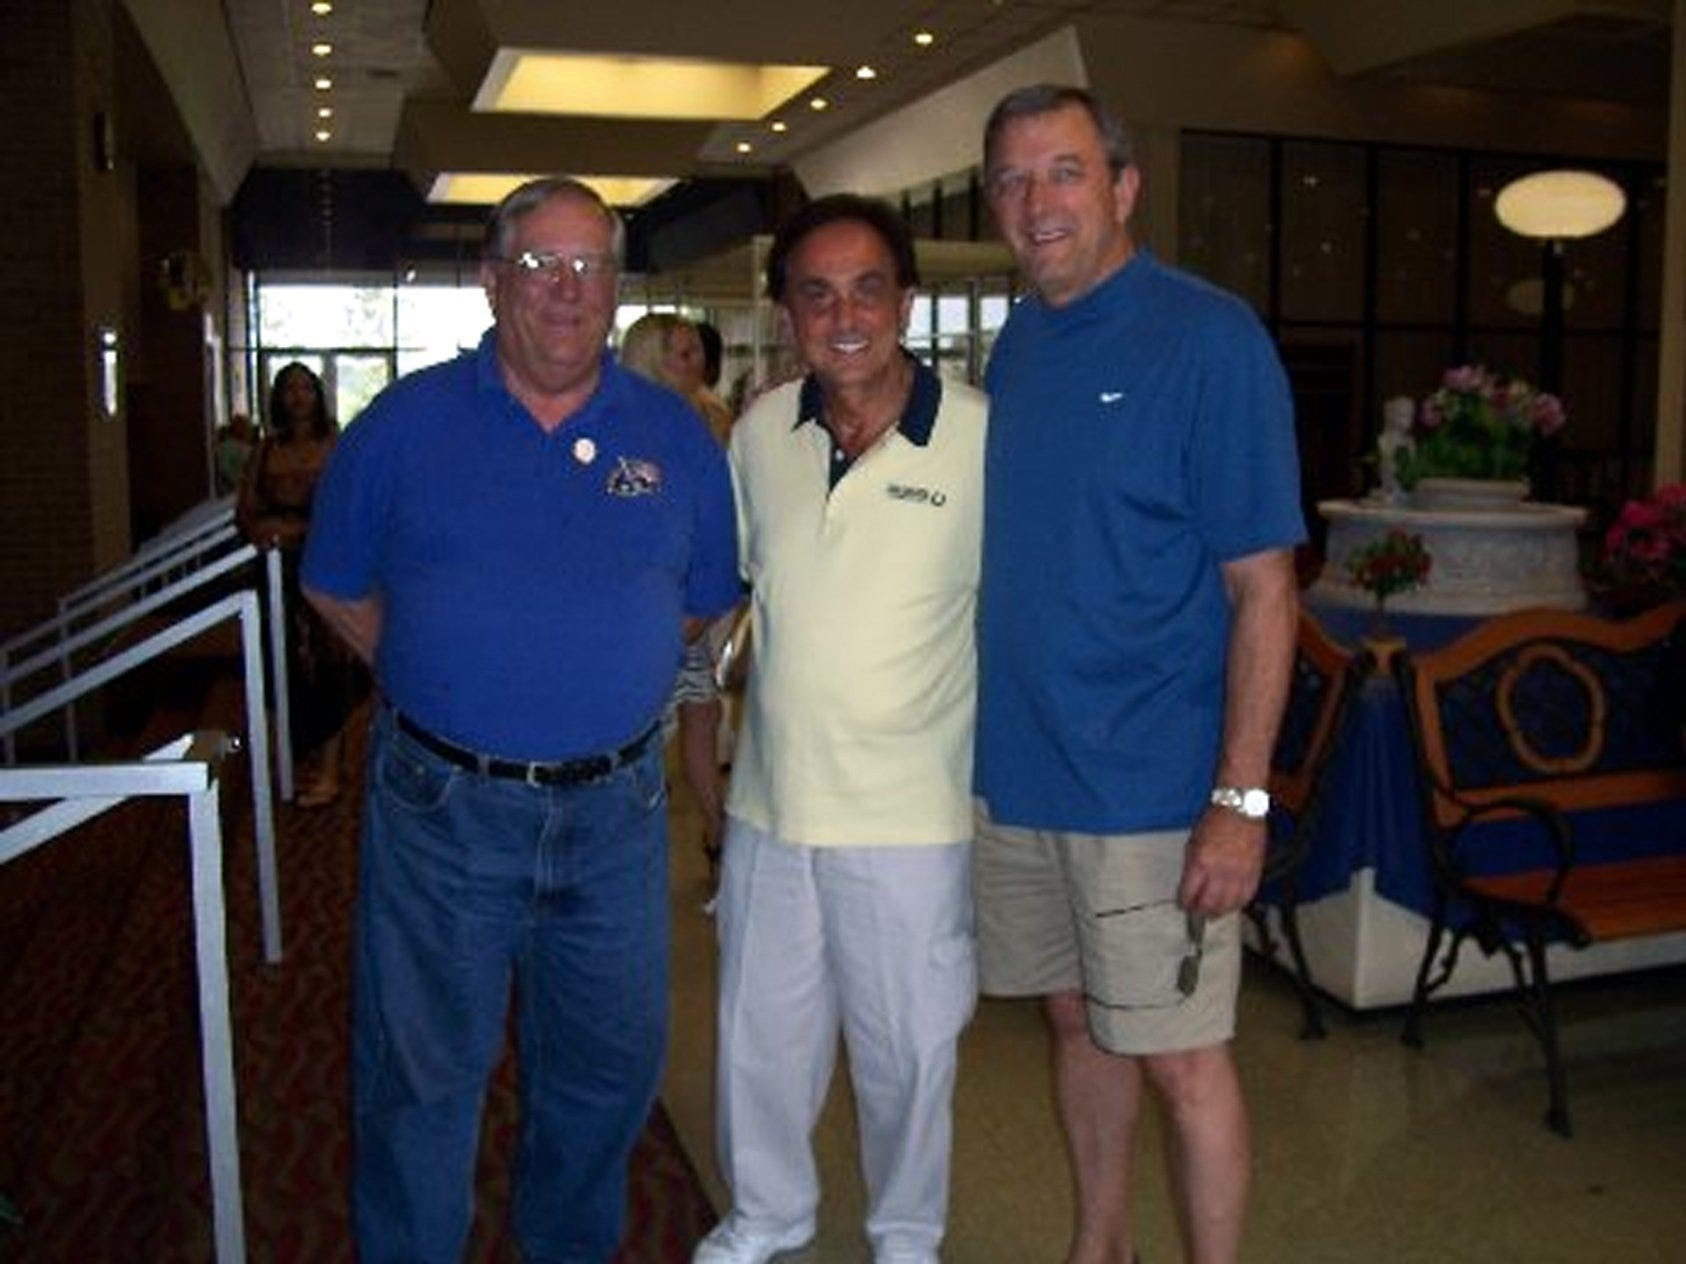 """Famed deejay George Klein (middle) and longtime of friend of Elvis Presley, was warmly greeted to the concert event by Millington Mayor Richard Hodges and former Millington alderman Dennis Wages, longtime friend of George Klein. Mayor Hodges said, """"It was perfect...anyone who didn't attend missed great performances. Despite the reason for the benefit, 'we were big in spirit.'"""""""